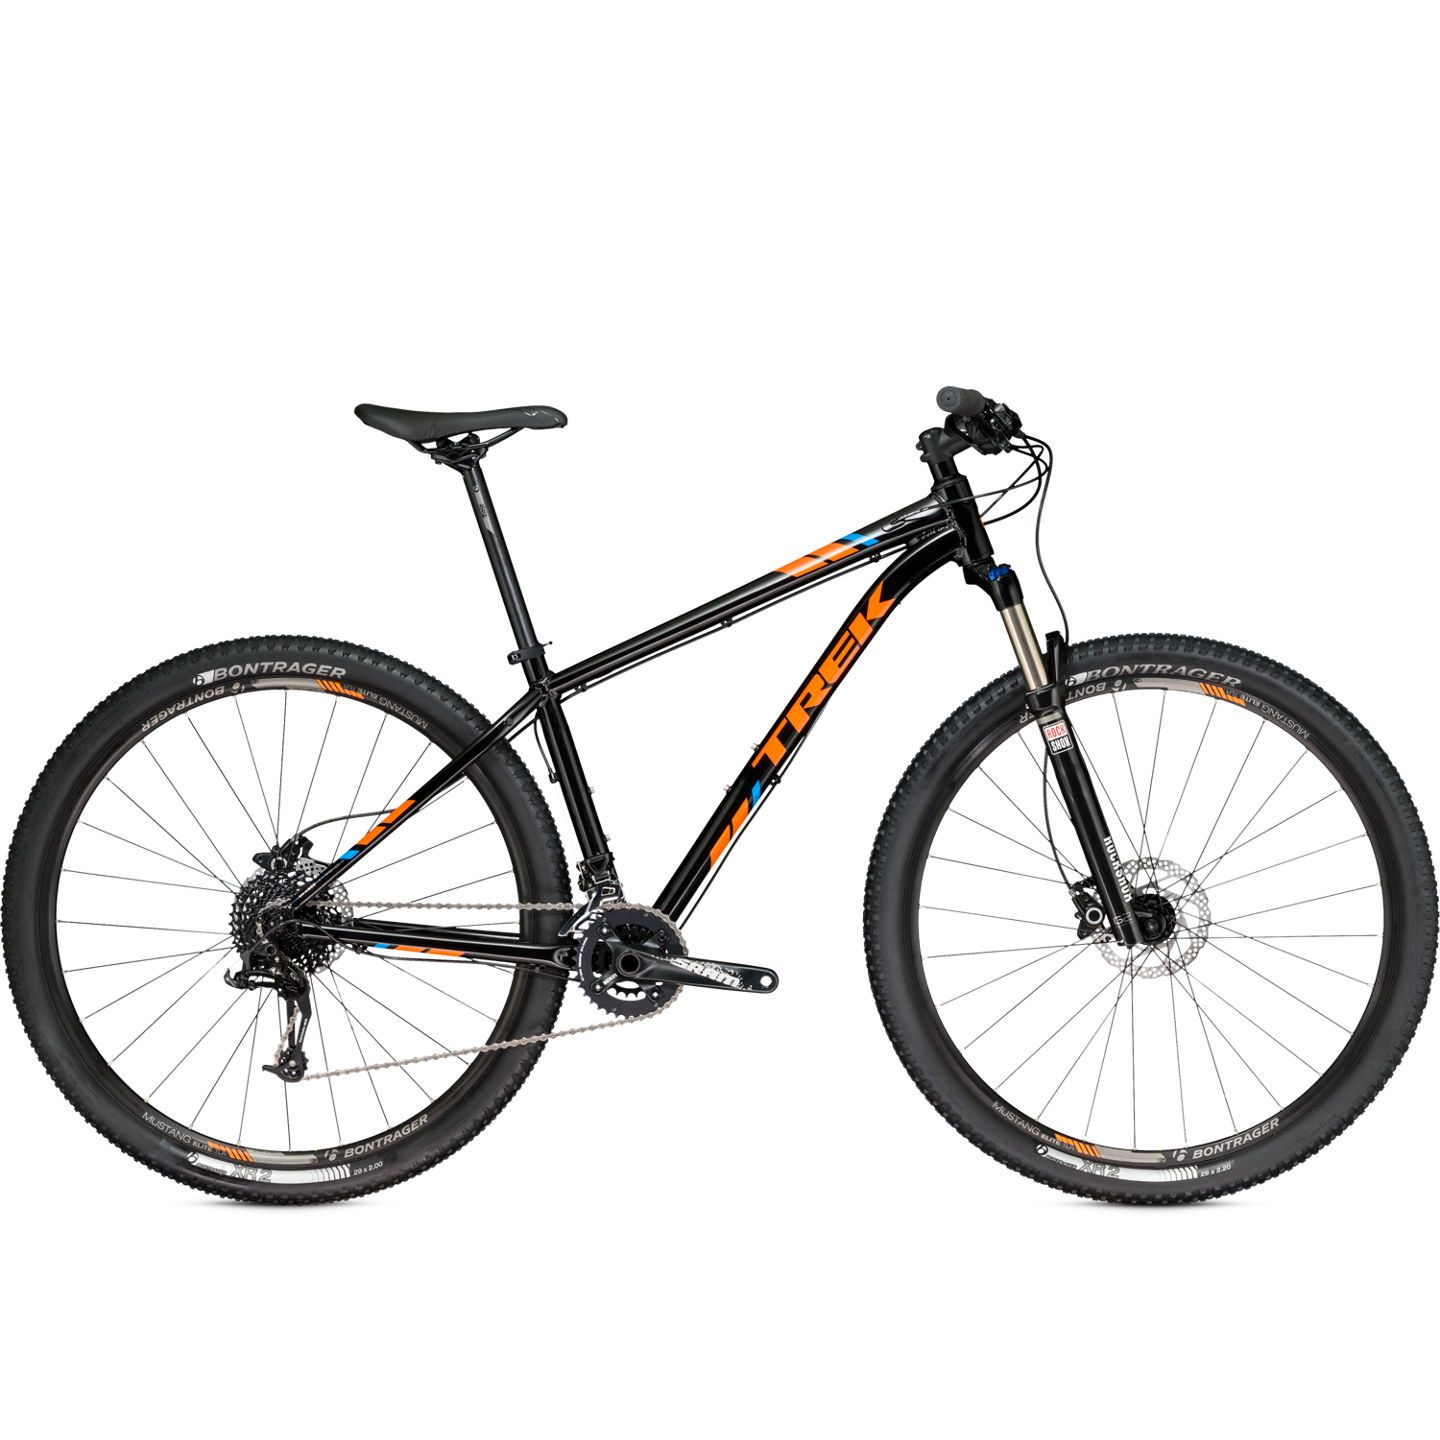 VTT semi-rigide Trek X-Caliber 8 Noir/Orange 2017 - 18.5\